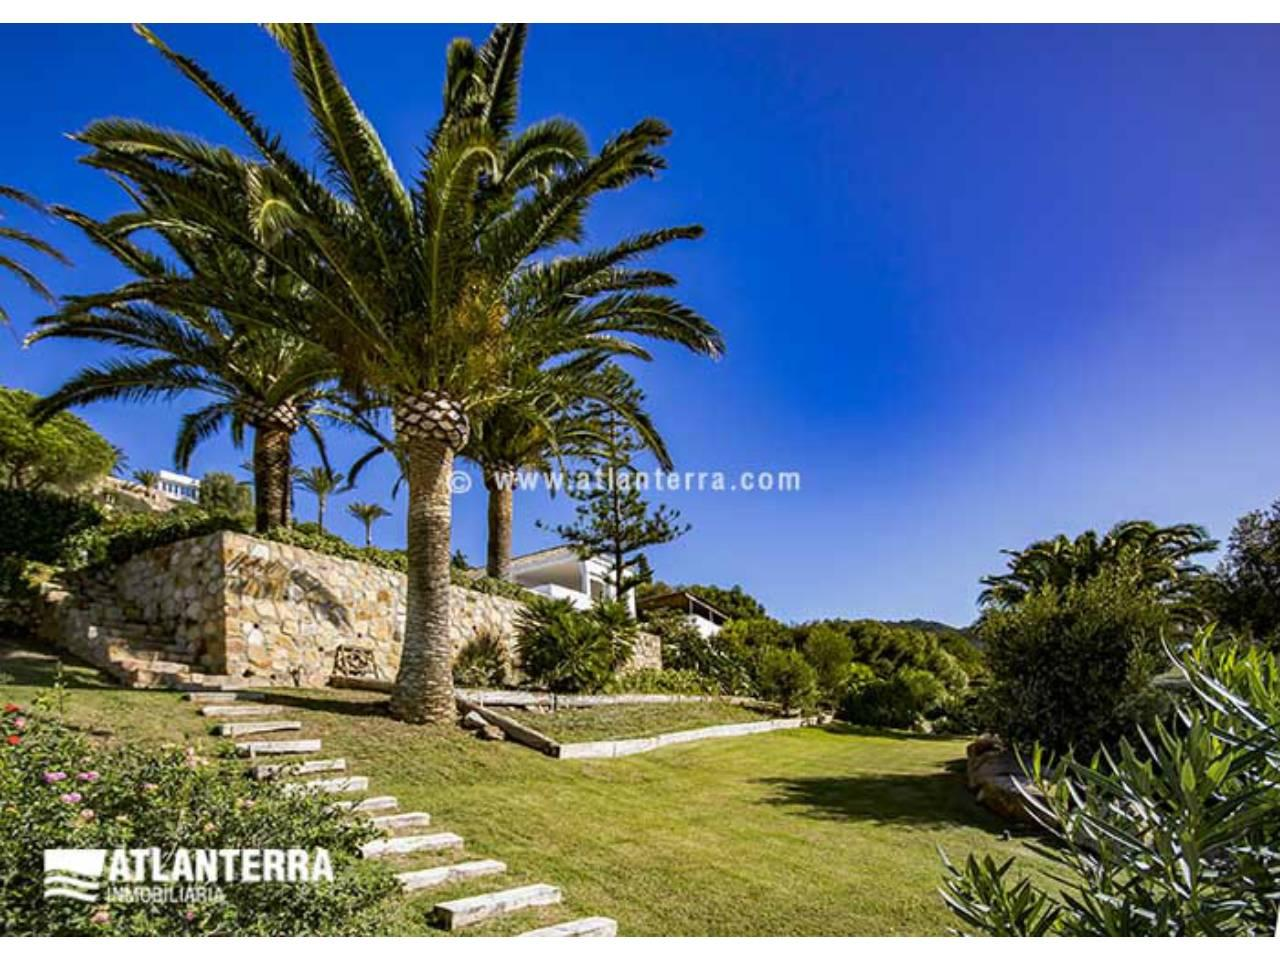 25885350 3170057 foto 228395 - Rustic style, privacy and wonderful views in this villa in Zahara de los Atunes (Cádiz)